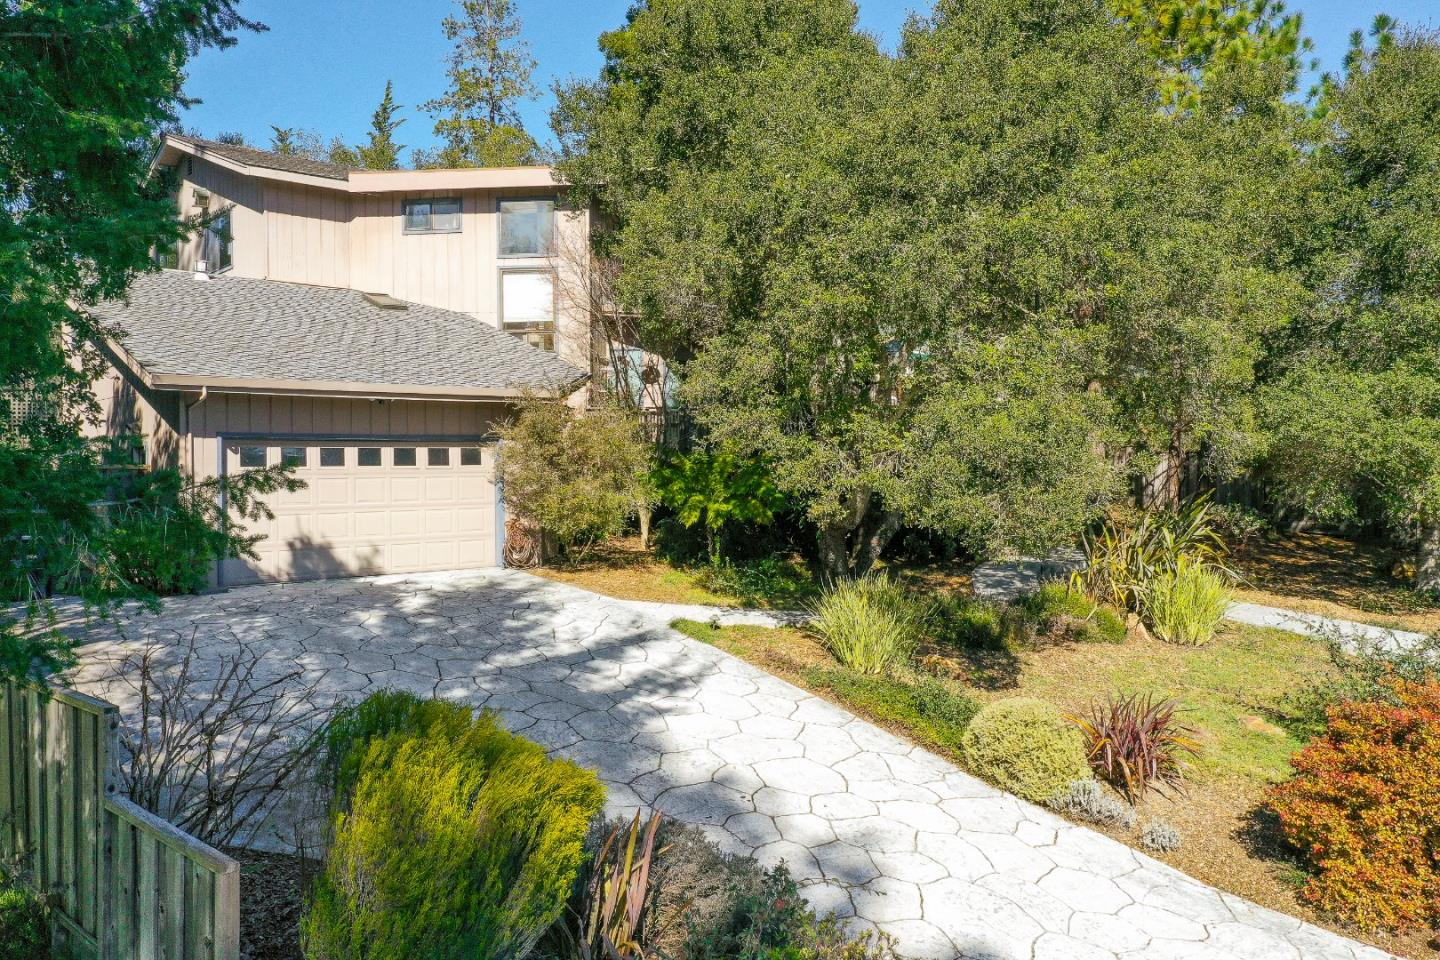 Welcome home to this beautiful Scotts Valley gem! Enjoy light and bright living with vaulted ceilings and an airy open layout. This home is the perfect spot to entertain with multiple decks and a magical garden with fruit trees on an almost a ½ acre lot!  The house boasts 3 large bedrooms and an office (potential 4th bedroom), 2.5 baths, an extra bonus art studio and loft area in garage. The living area is spacious and inviting with a gas fireplace to enjoy on cold winter nights. Enjoy the quiet and private neighborhood that is conveniently located near restaurants, shopping and parks. With quick access to the freeway for an easy commute to the heart of Silicon Valley the location is prime!  You must see this spectacular home to appreciate it!